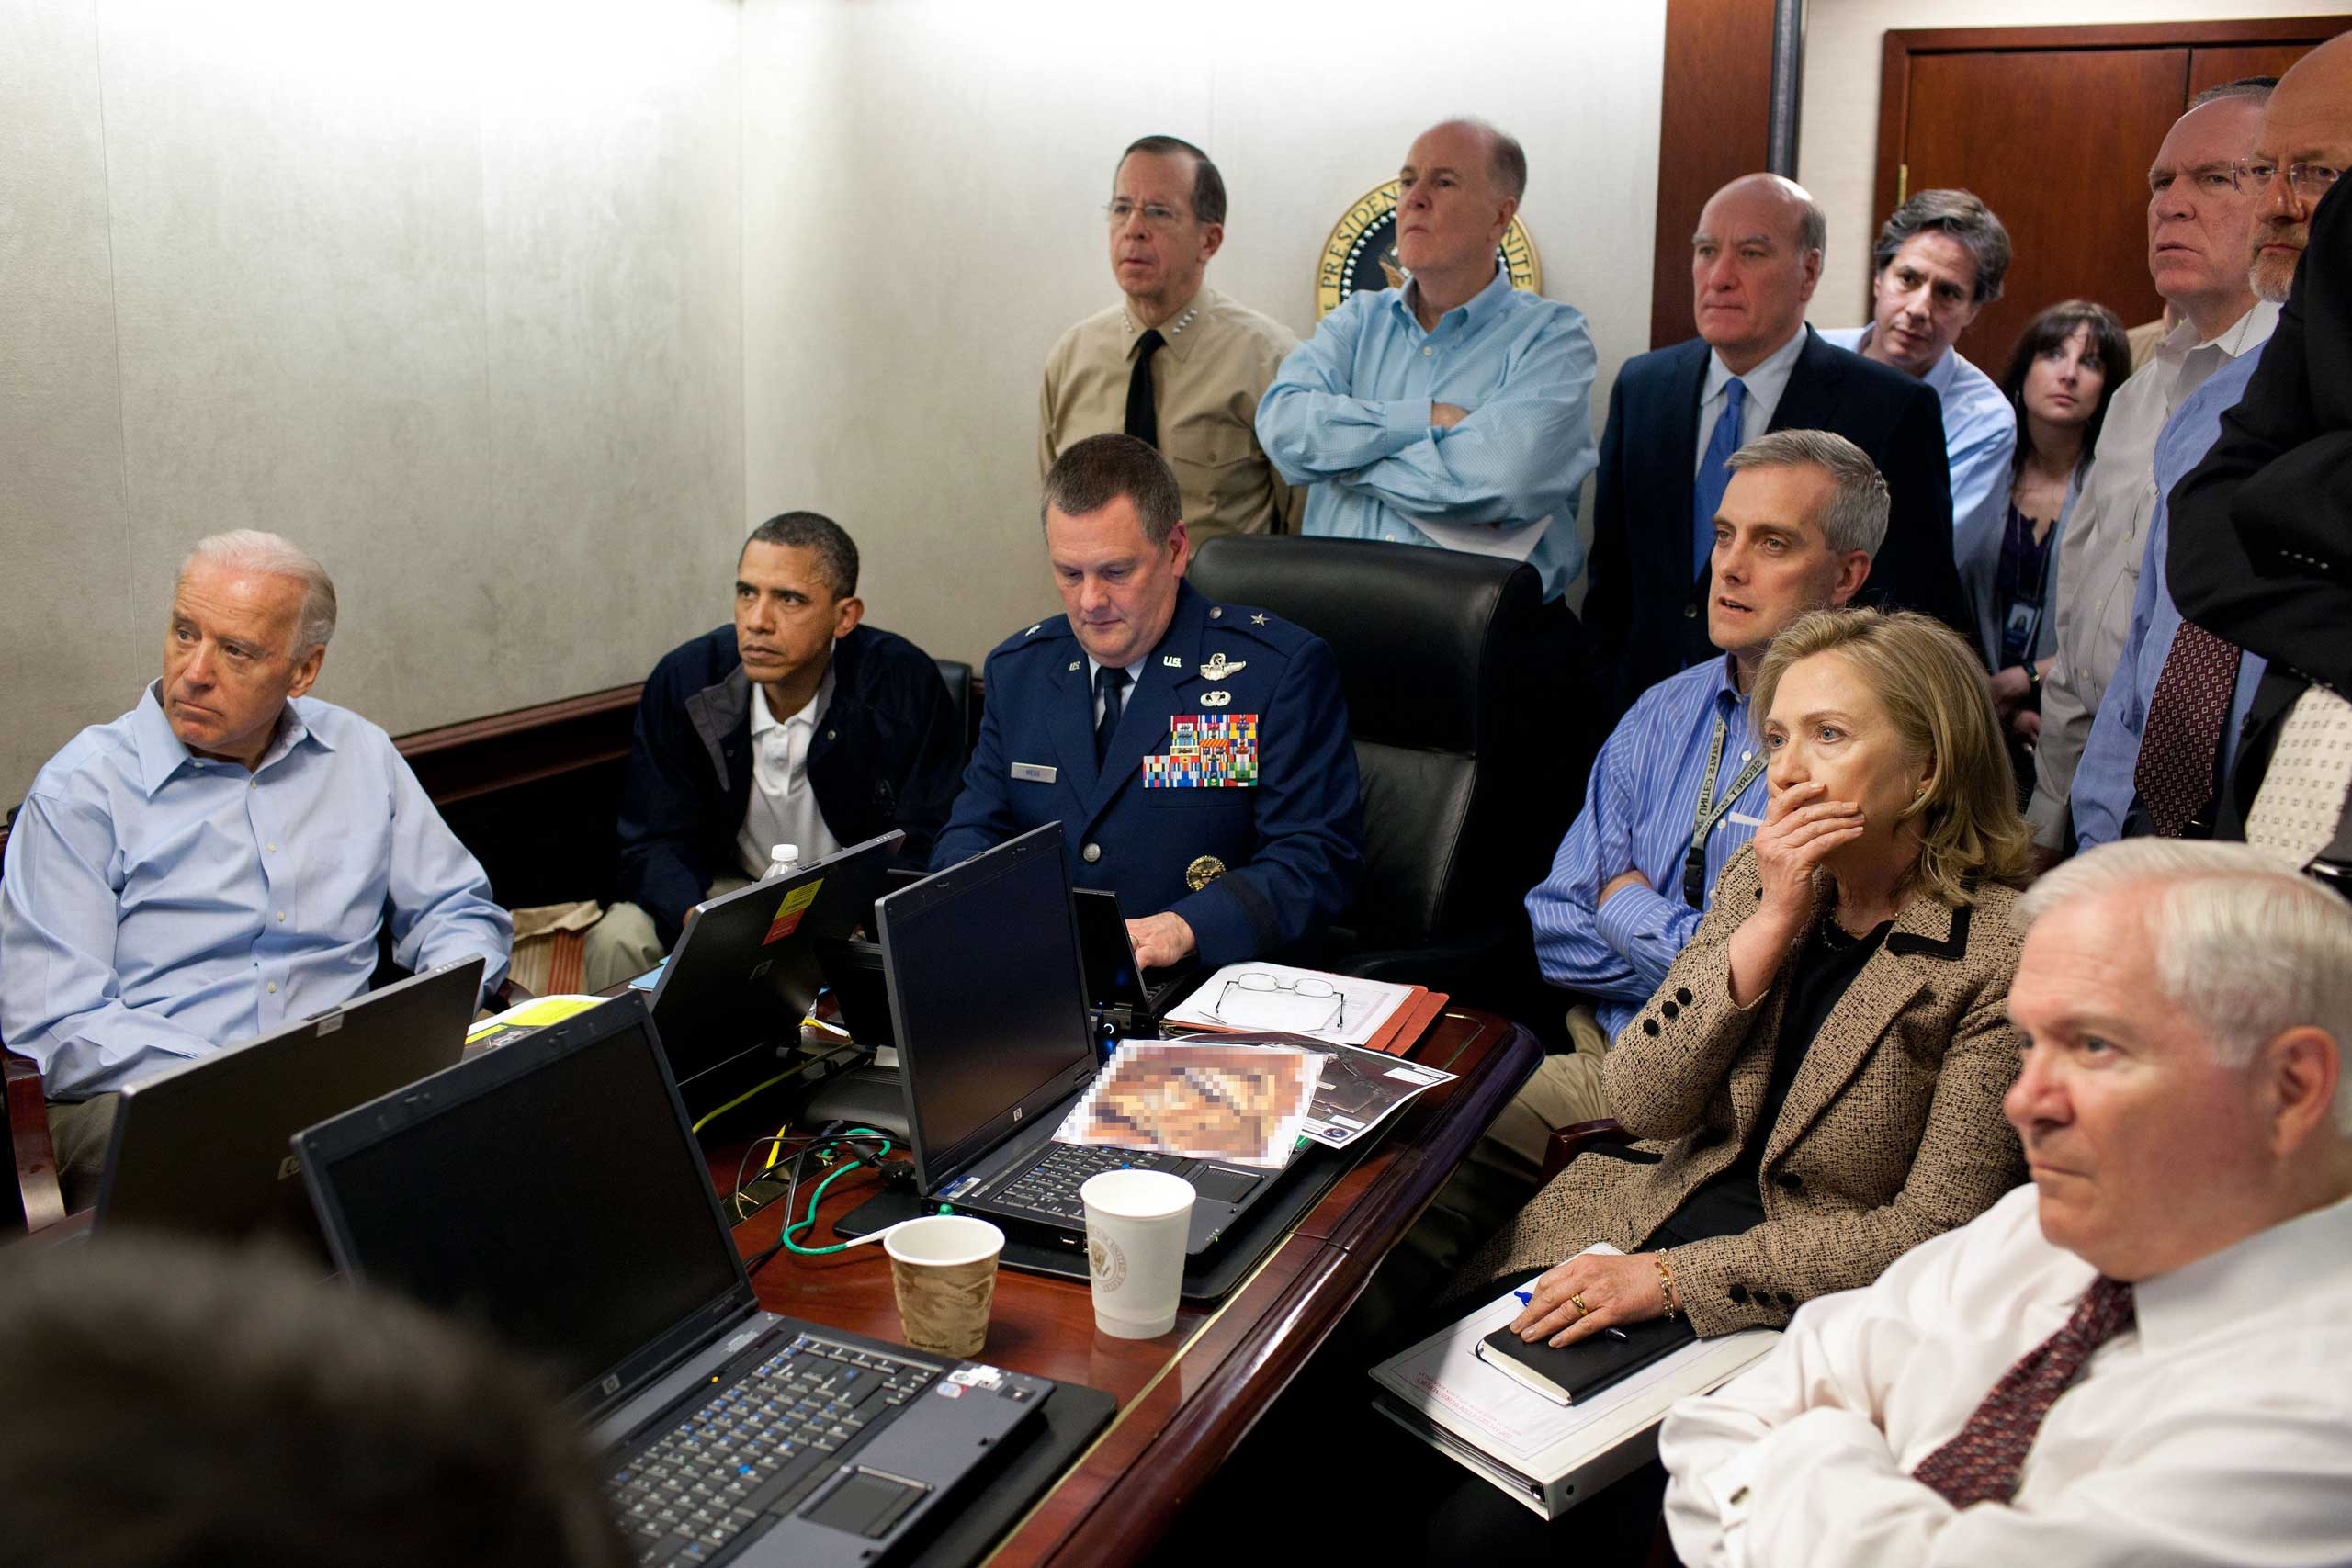 Pete Souza. Situation Room, White House, Washington. May 1, 2011                                                              During the mission against Osama bin Laden, the President convened multiple meetings in the Situation Room throughout the day. The group moved to a smaller conference room within the Situation Room to monitor the mission as it happened in real time. This photograph is one from about 100 that I made in that setting, and one of about 1,000 that I made during the day. I didn't realize this particular photograph would get so much attention mostly because I was so caught up in trying to document everything taking place. I do think in retrospect it accurately reflects the tension and emotion of everyone involved in the mission.